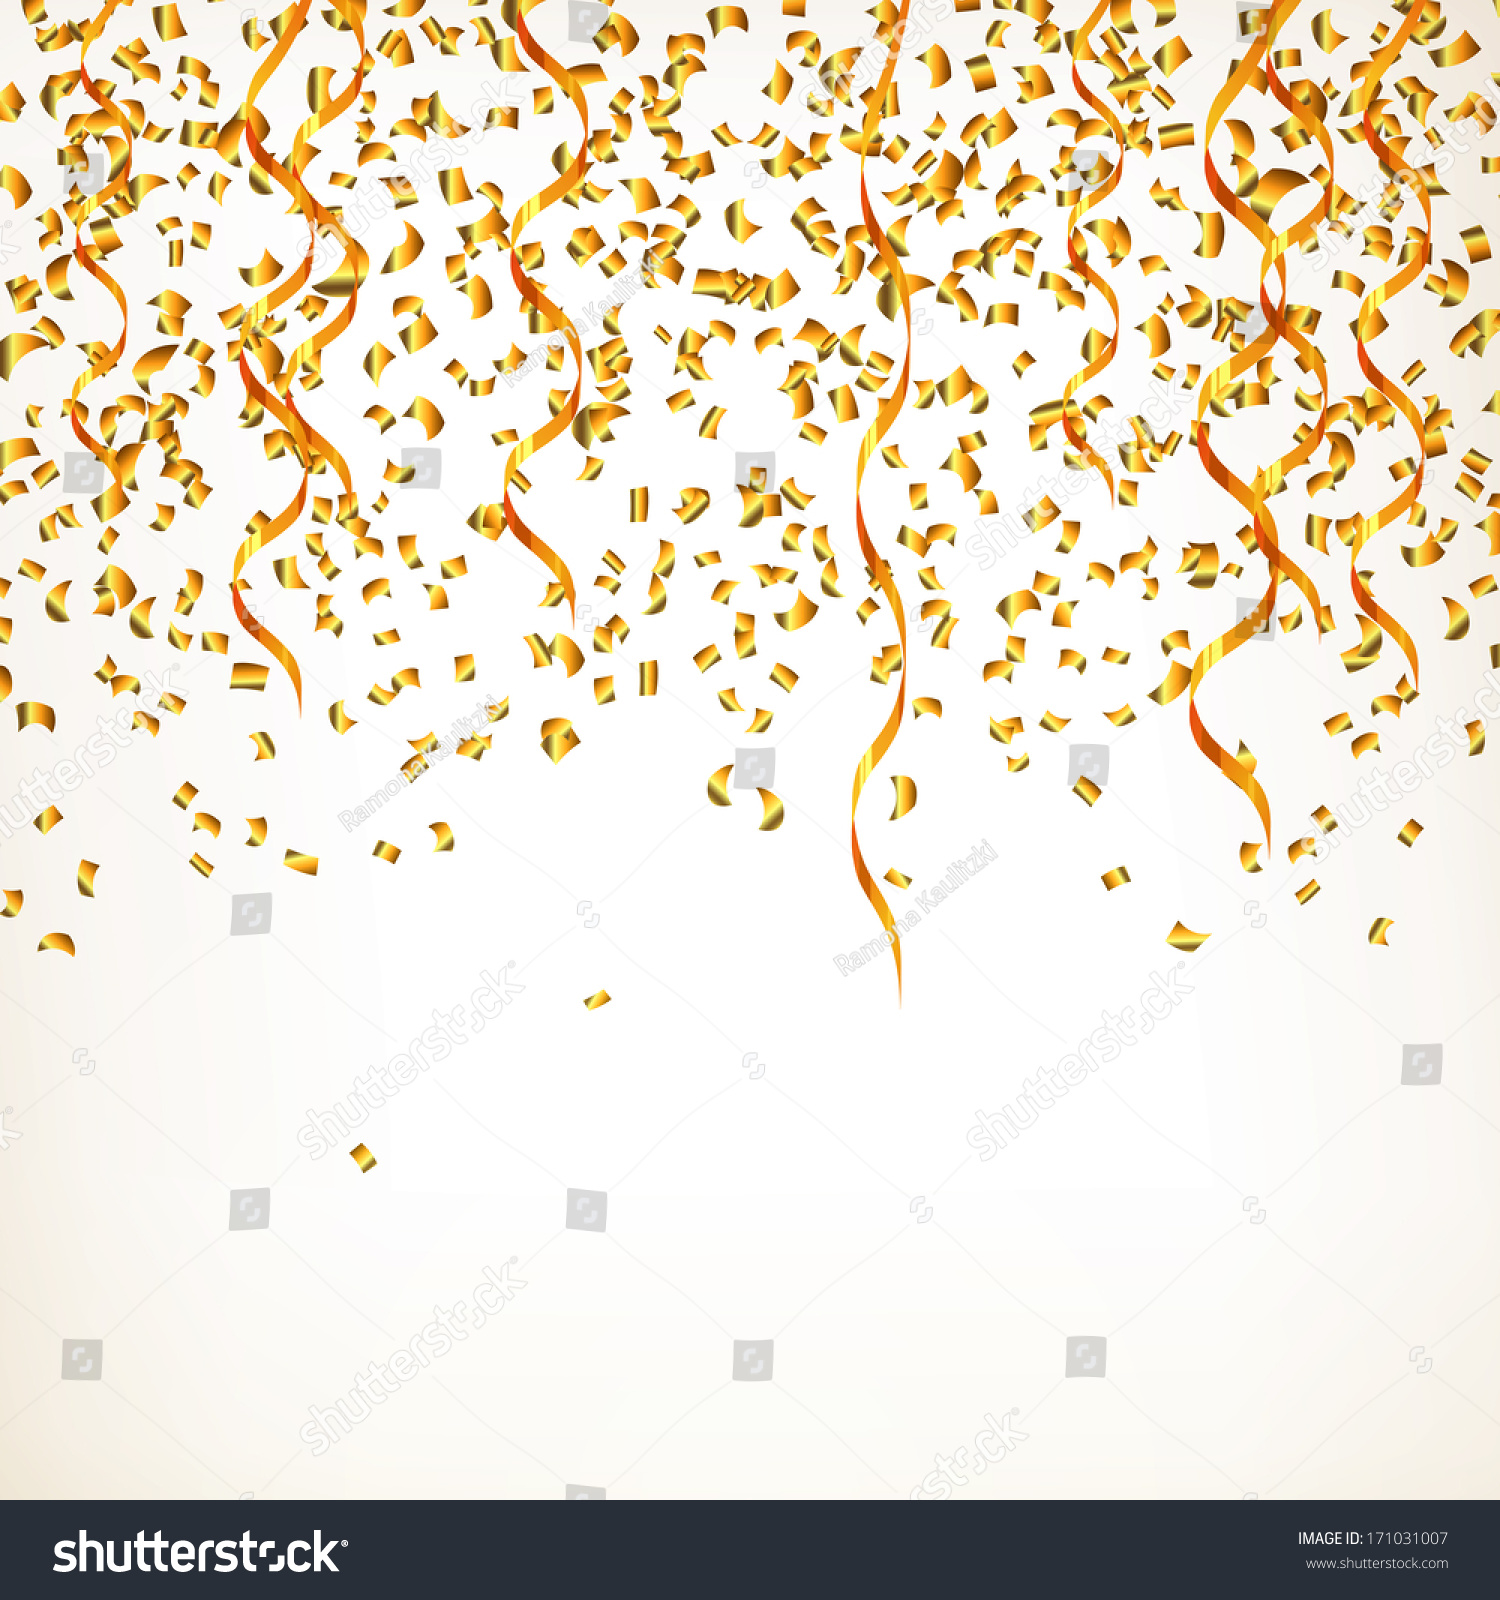 gold party vector - photo #36